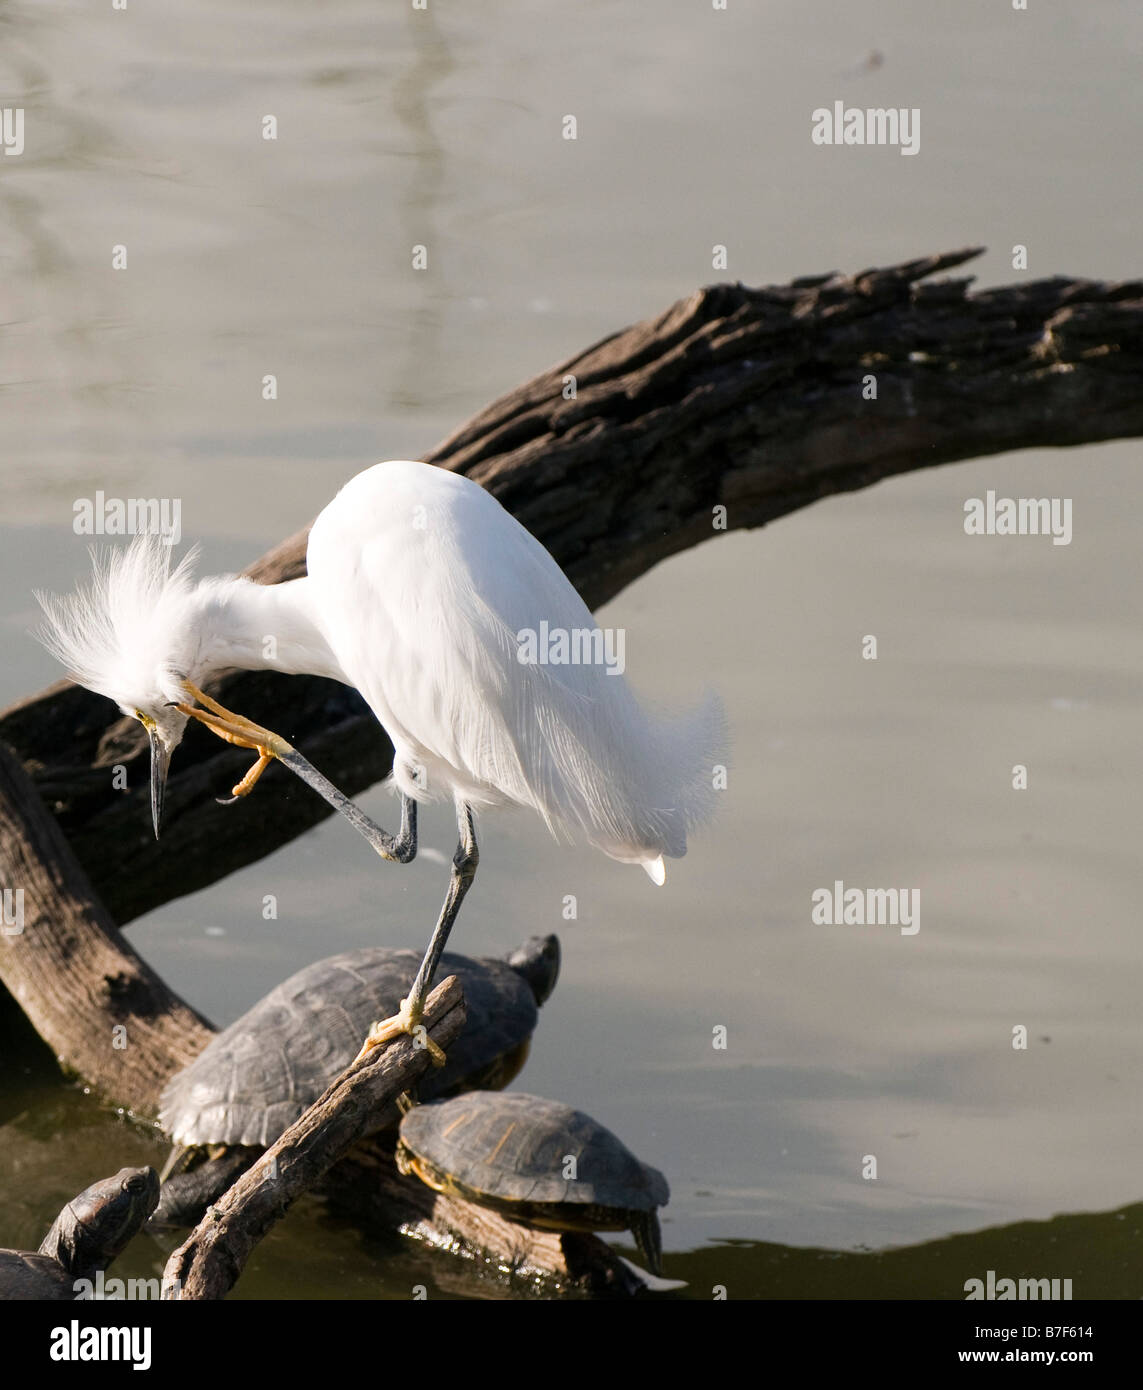 An egret sprucing up amidst a large number of turtles - Stock Image